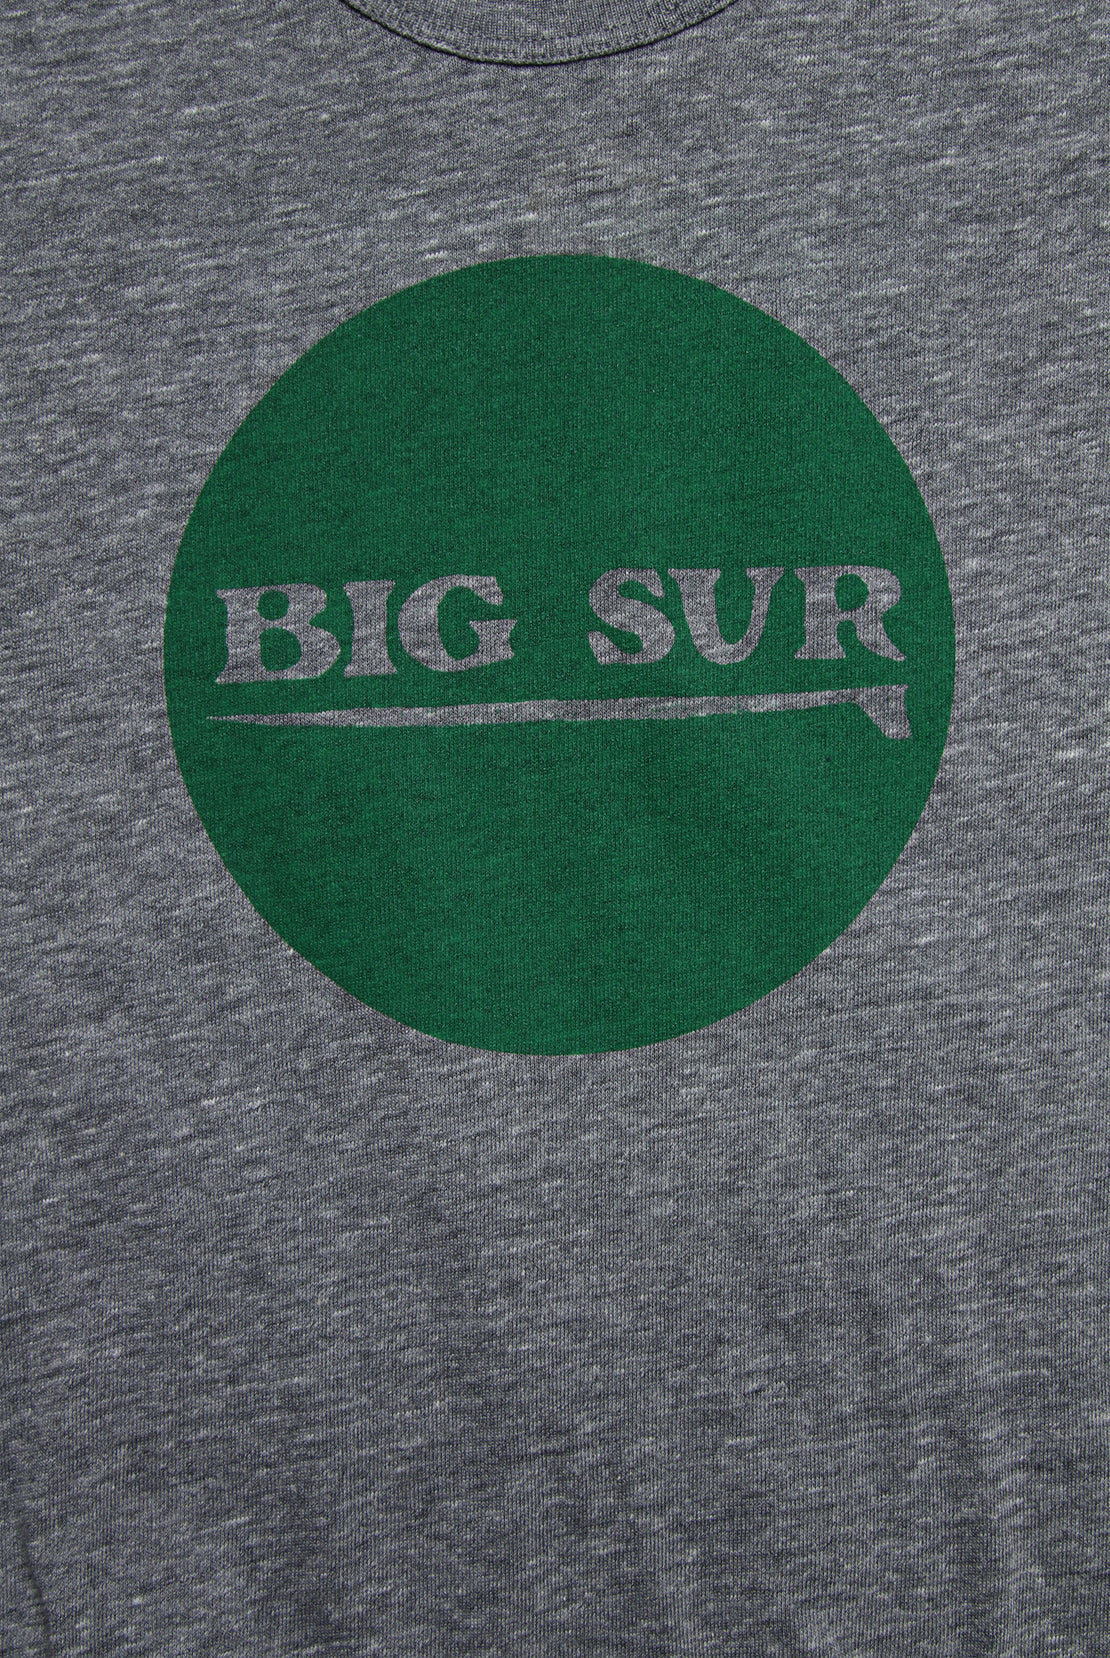 Graphic Tee - Big Sur